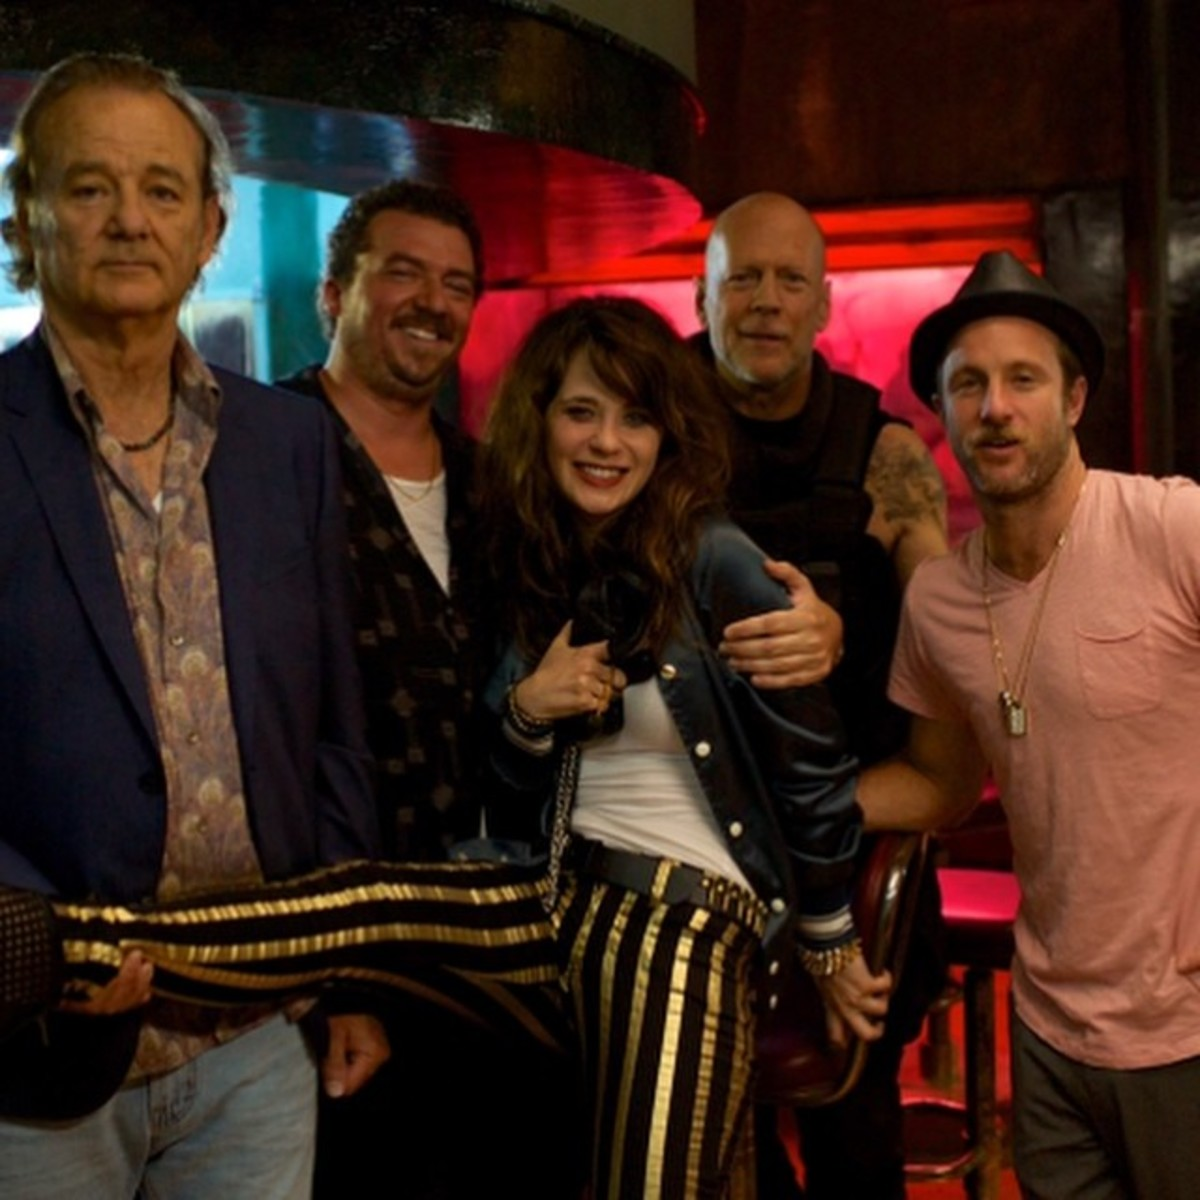 Zooey, Bill Murray, Bruce Willis and others on set